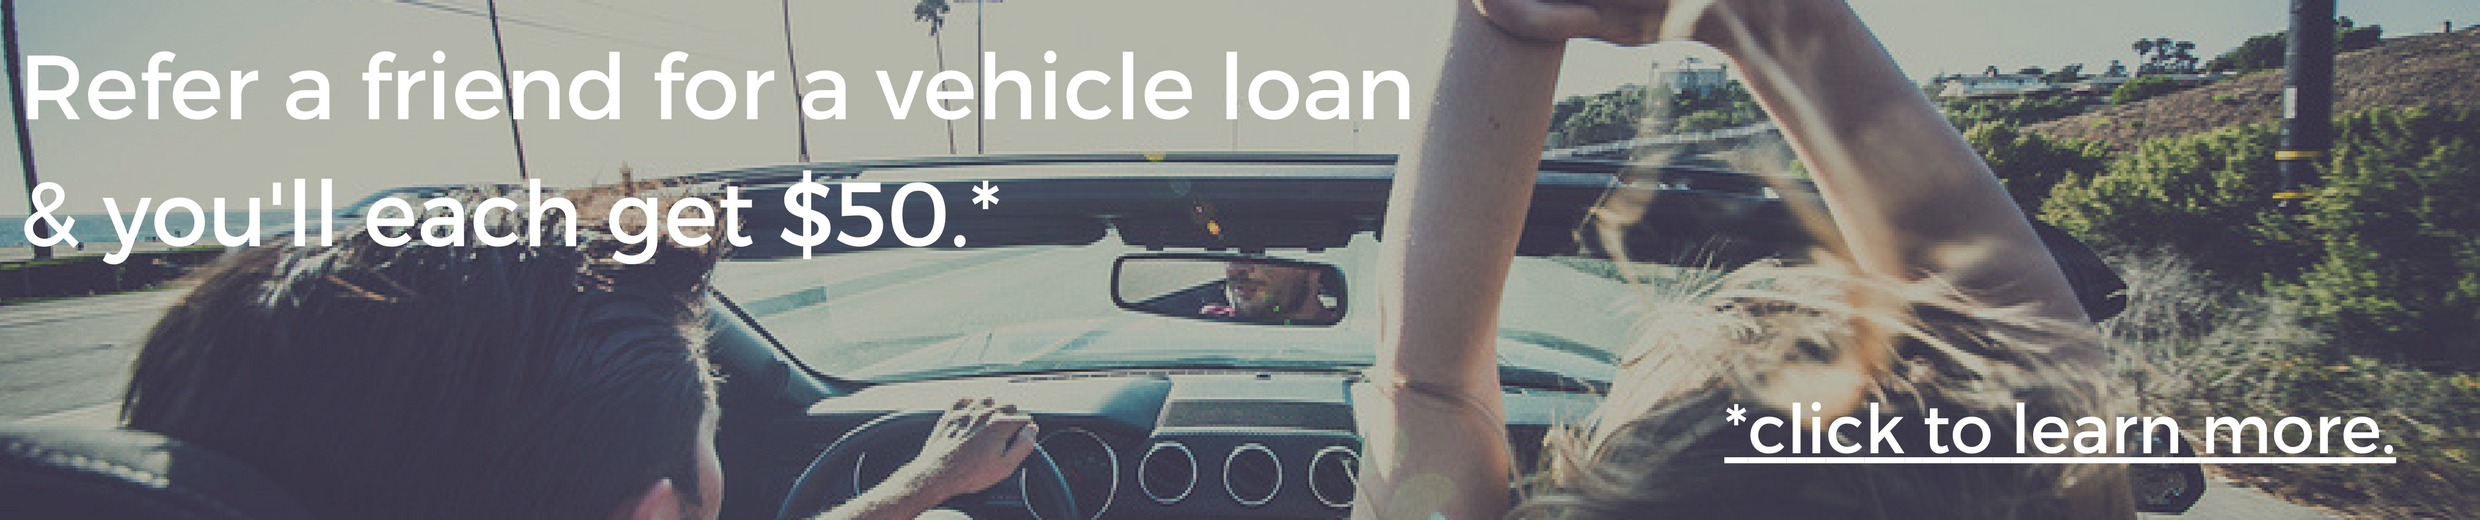 Refer a friend for a vehicle loan and you'll each get $50. Click to learn more.